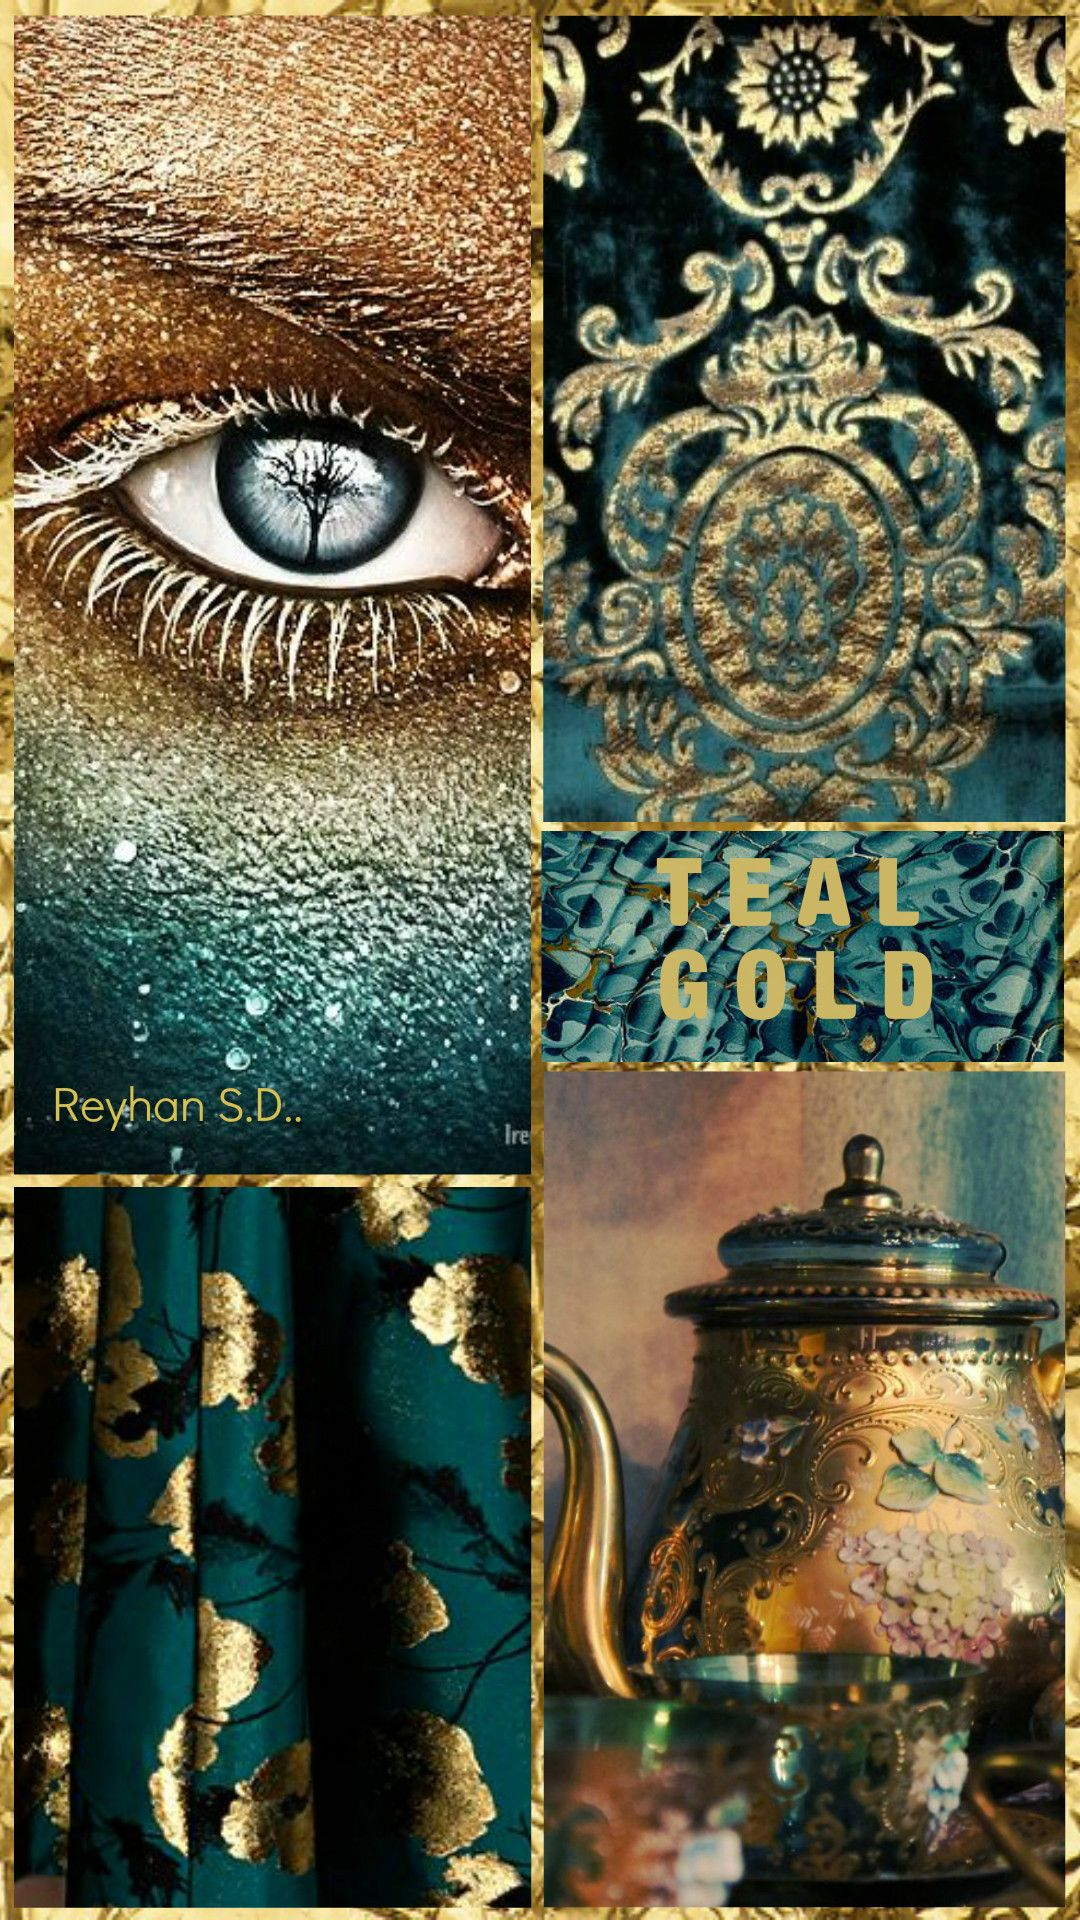 ' Teal & Gold '' by Reyhan S.D. #collageboard